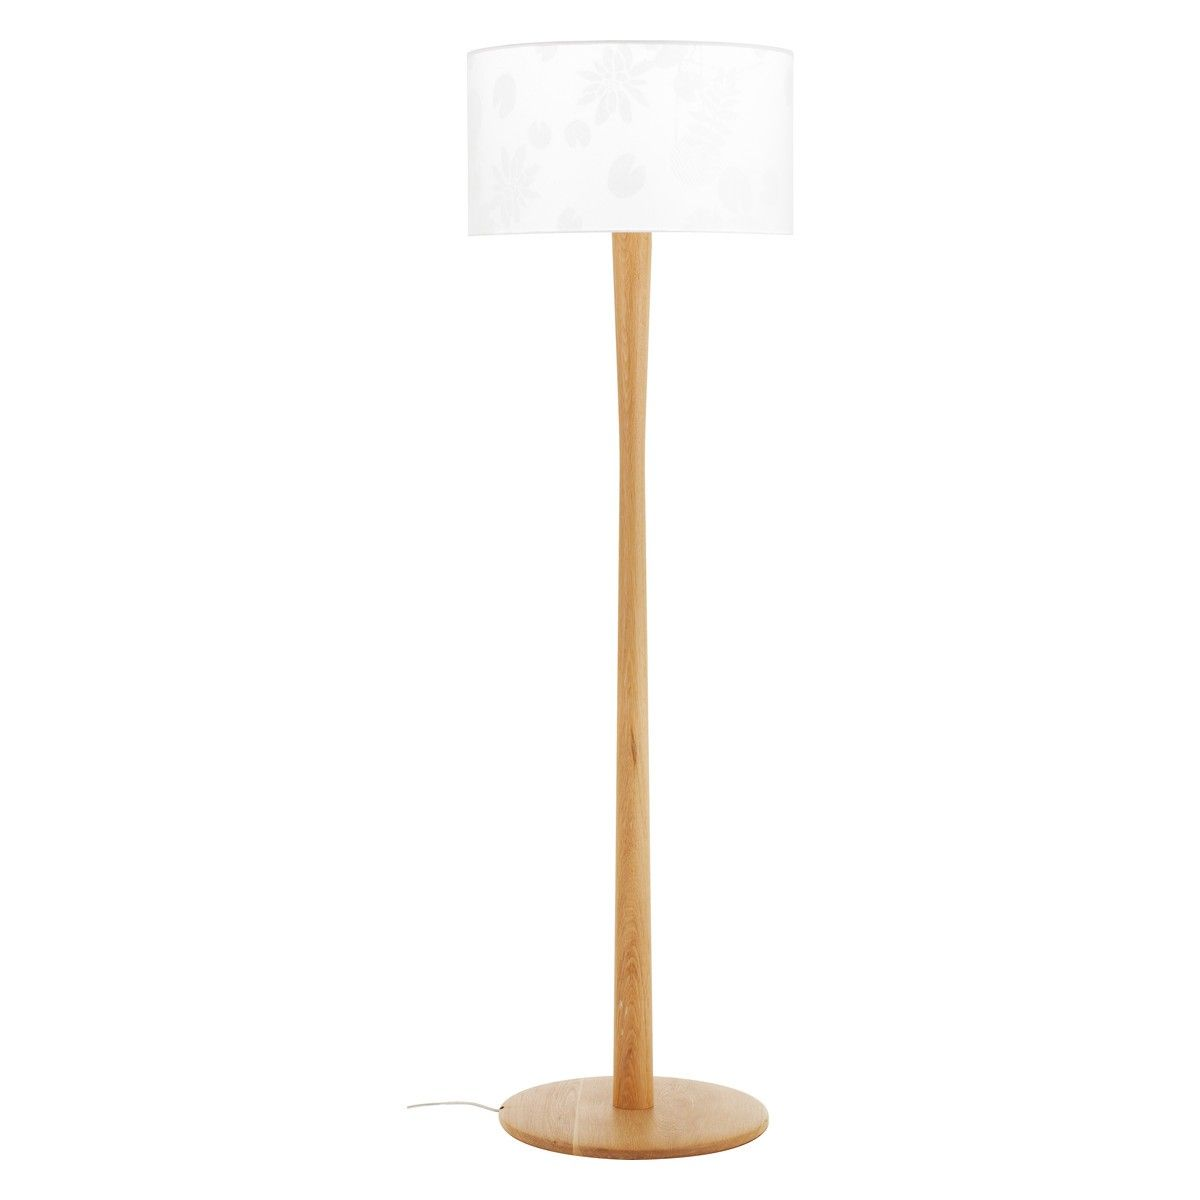 POLE Oak floor lamp base only Habitat | PROJECT: Carole and Angus ...